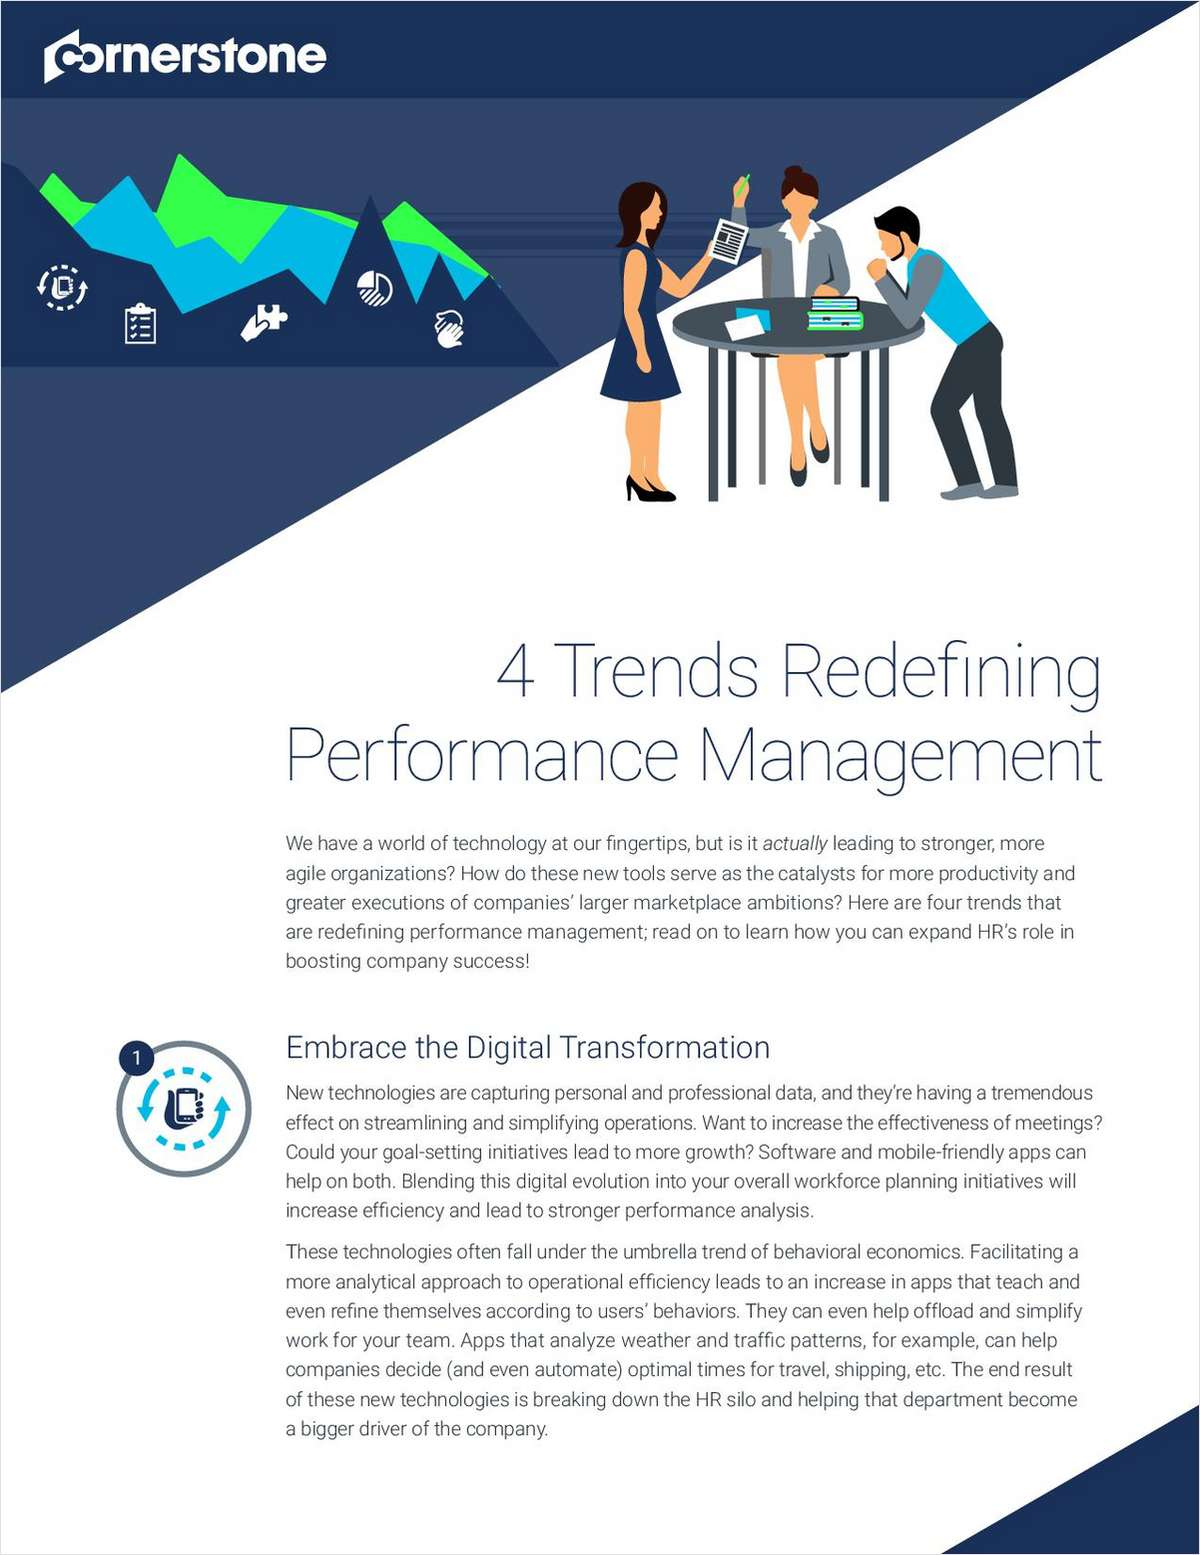 4 Trends Redefining Performance Management